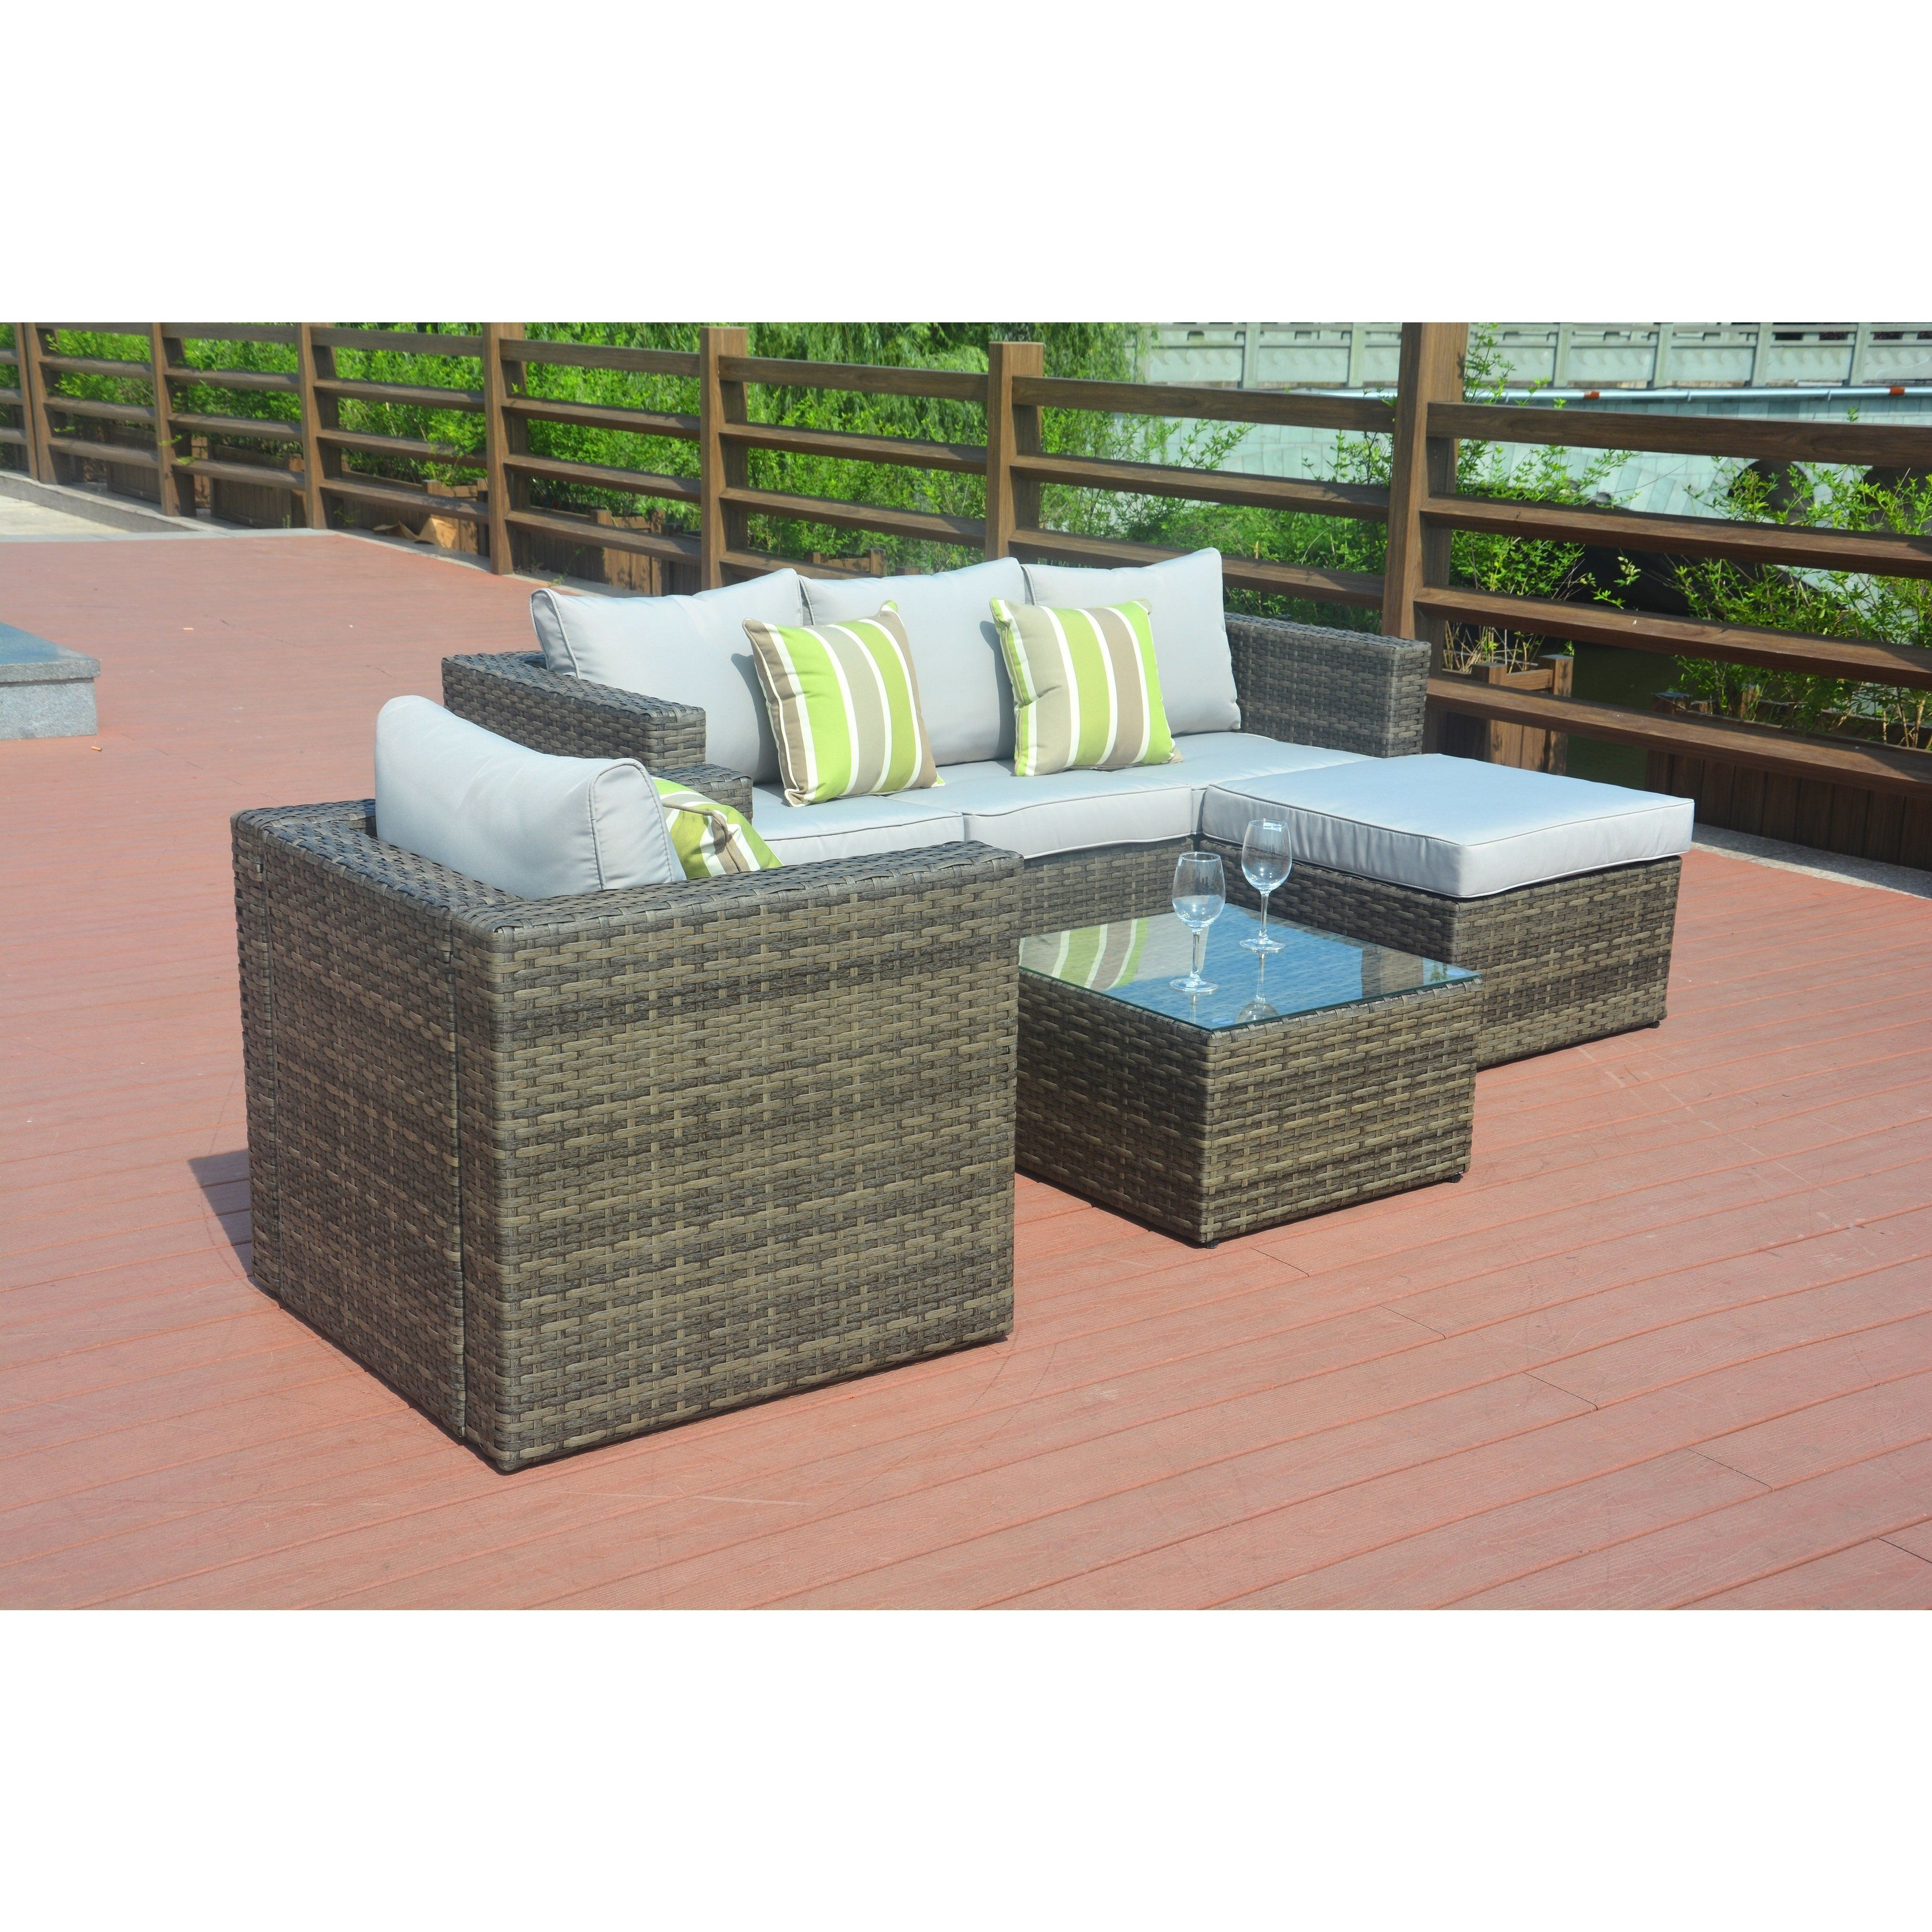 Online Shopping Bedding Furniture Electronics Jewelry Clothing More Sofa Set Outdoor Furniture Sets Beige Cushions